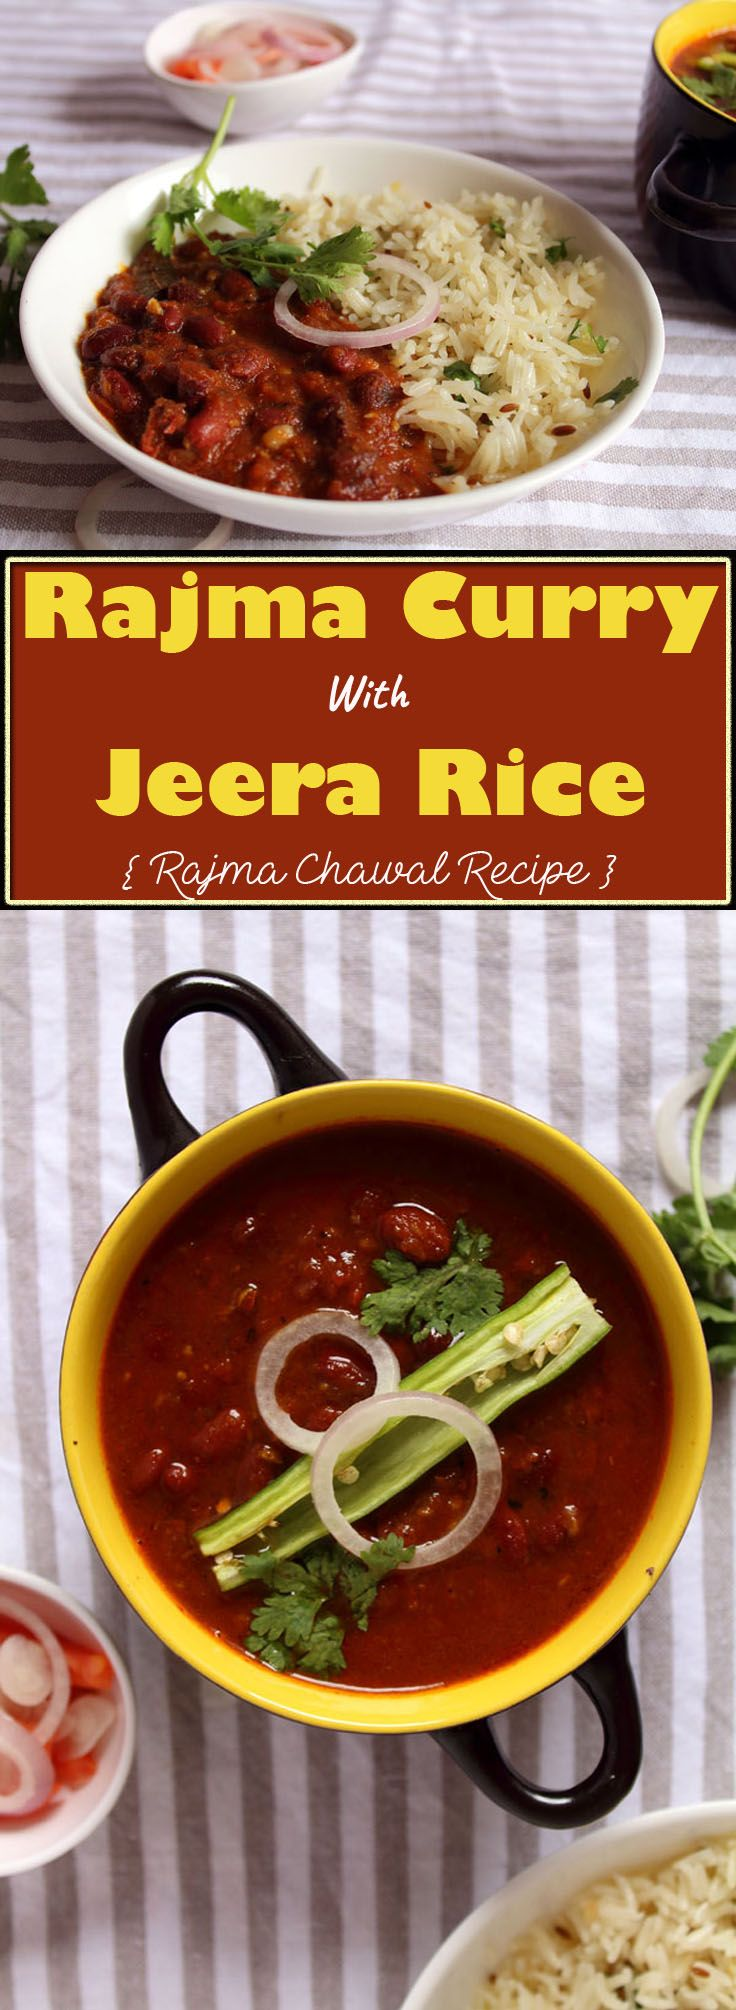 Rajma Curry With Jeera Rice OR Rajma Chawal Recipe – Red kidney beans curry spiced in tomato and onion puree with basmati rice tempered in roasted cumin. Rajma Curry with Jeera Rice is the soul north Indian speciality and you can find it in any north Indian restaurants all over the world.